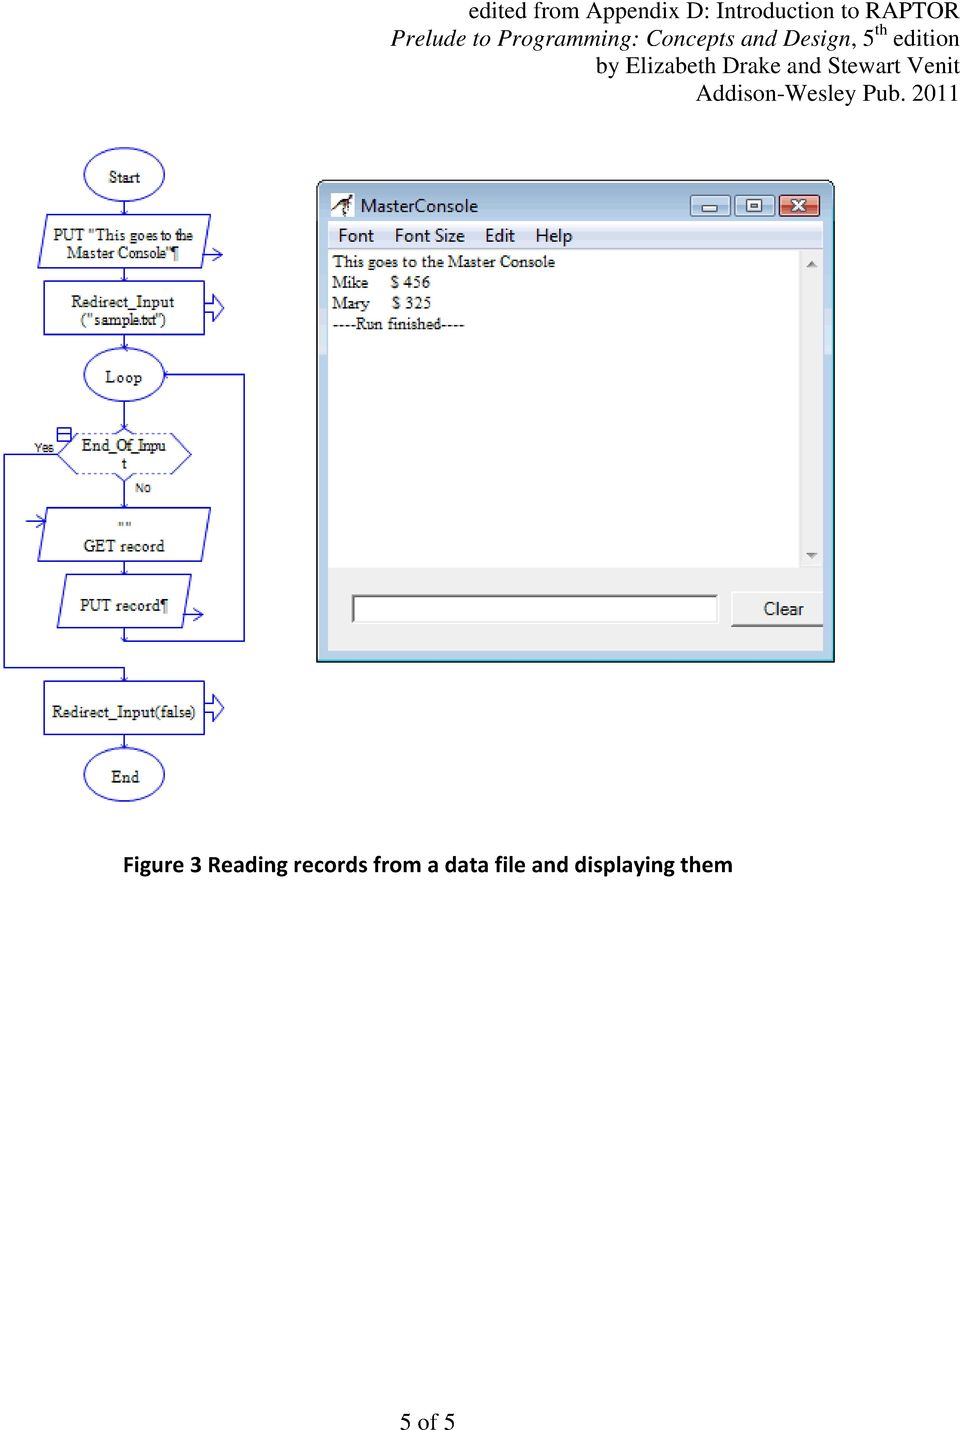 Introduction to RAPTOR: Data Files  Creating and Displaying